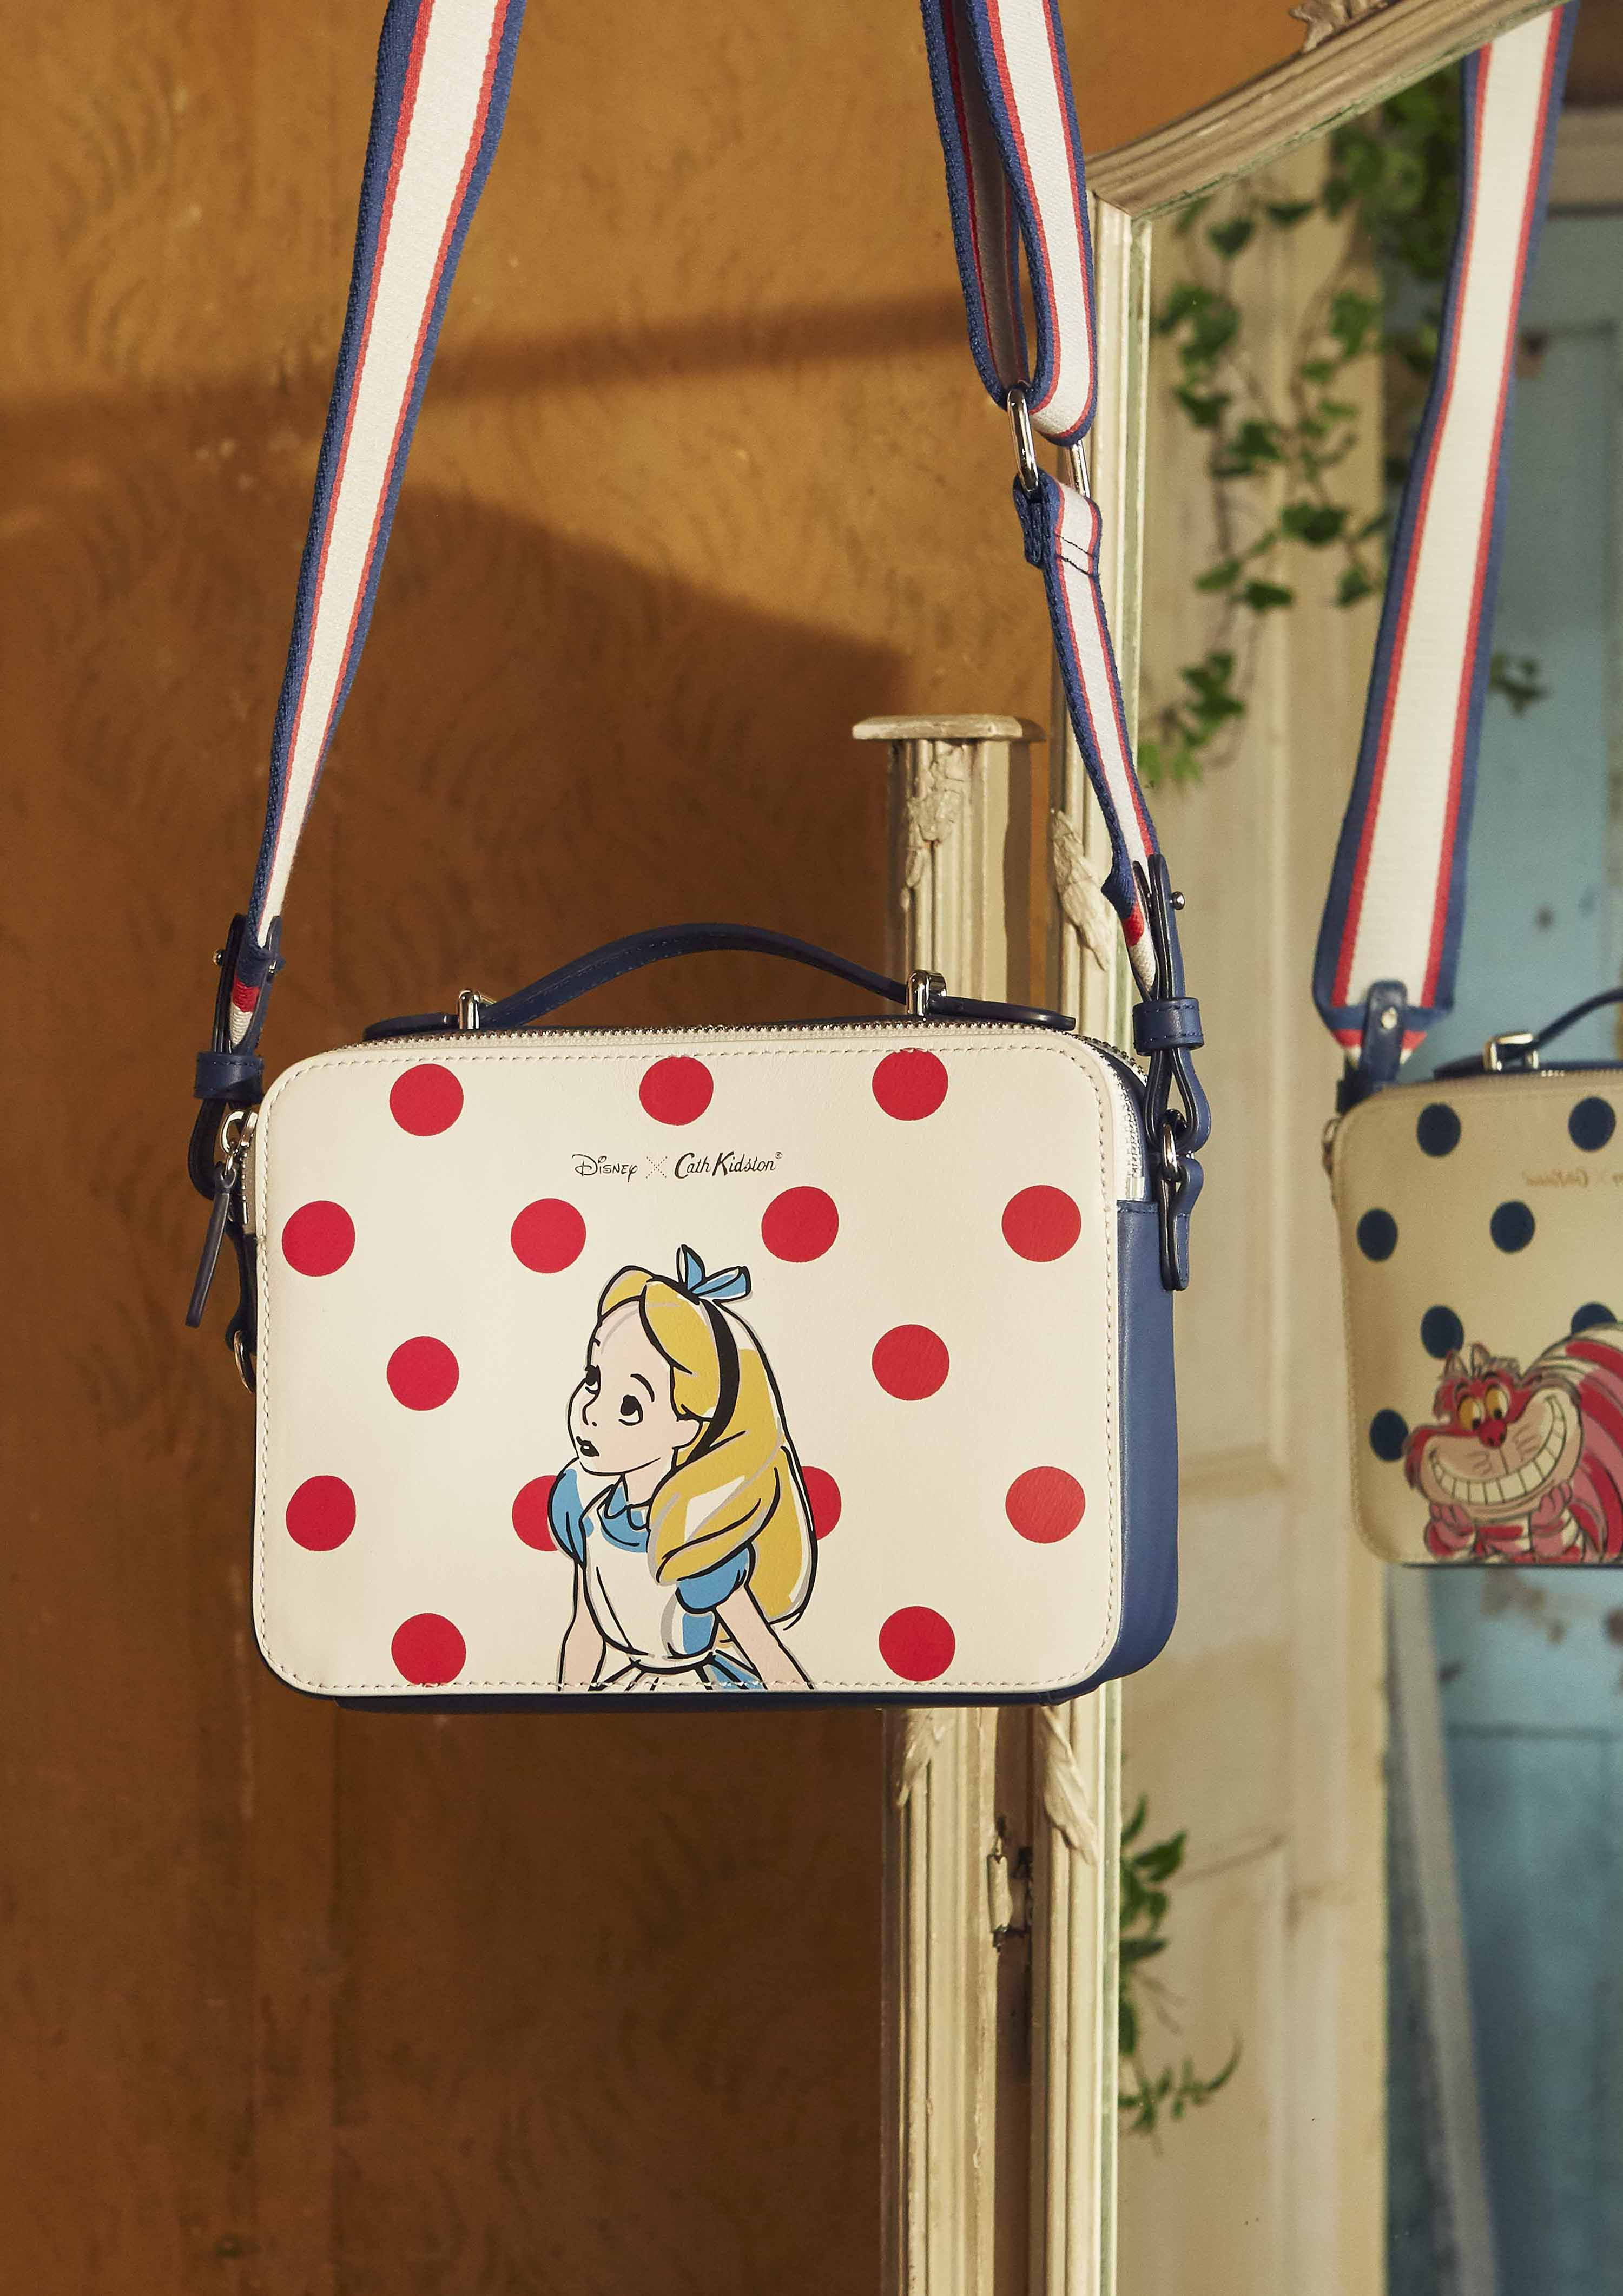 4bda1d3f0 Our medium lozenge bag is the perfect box sized bag. Featuring Alice in  Wonderland and The Cheshire Cat on our iconic ...